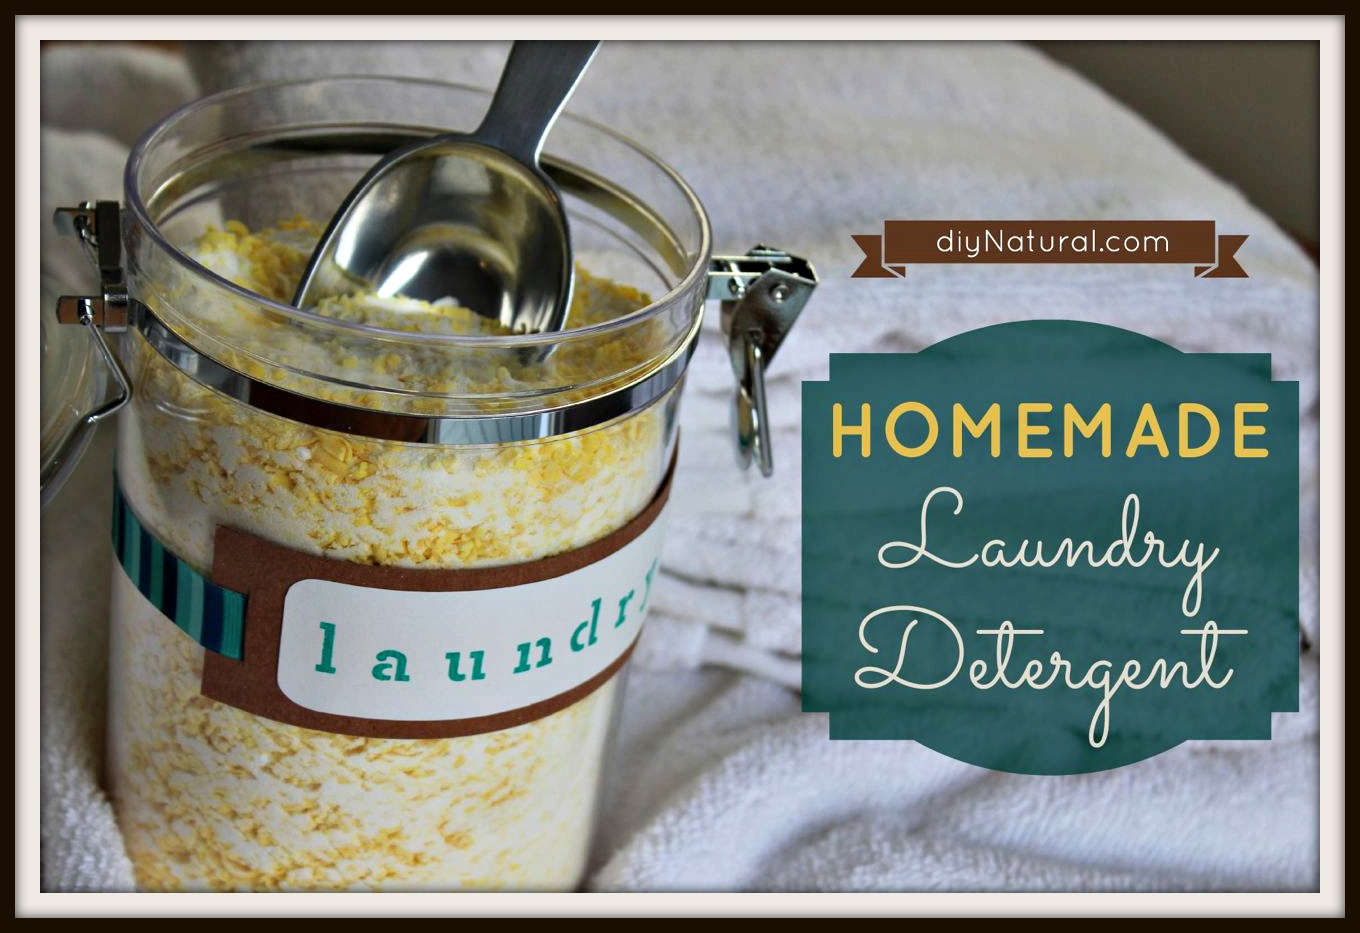 Homemade Laundry Detergent The Best Natural Recipe